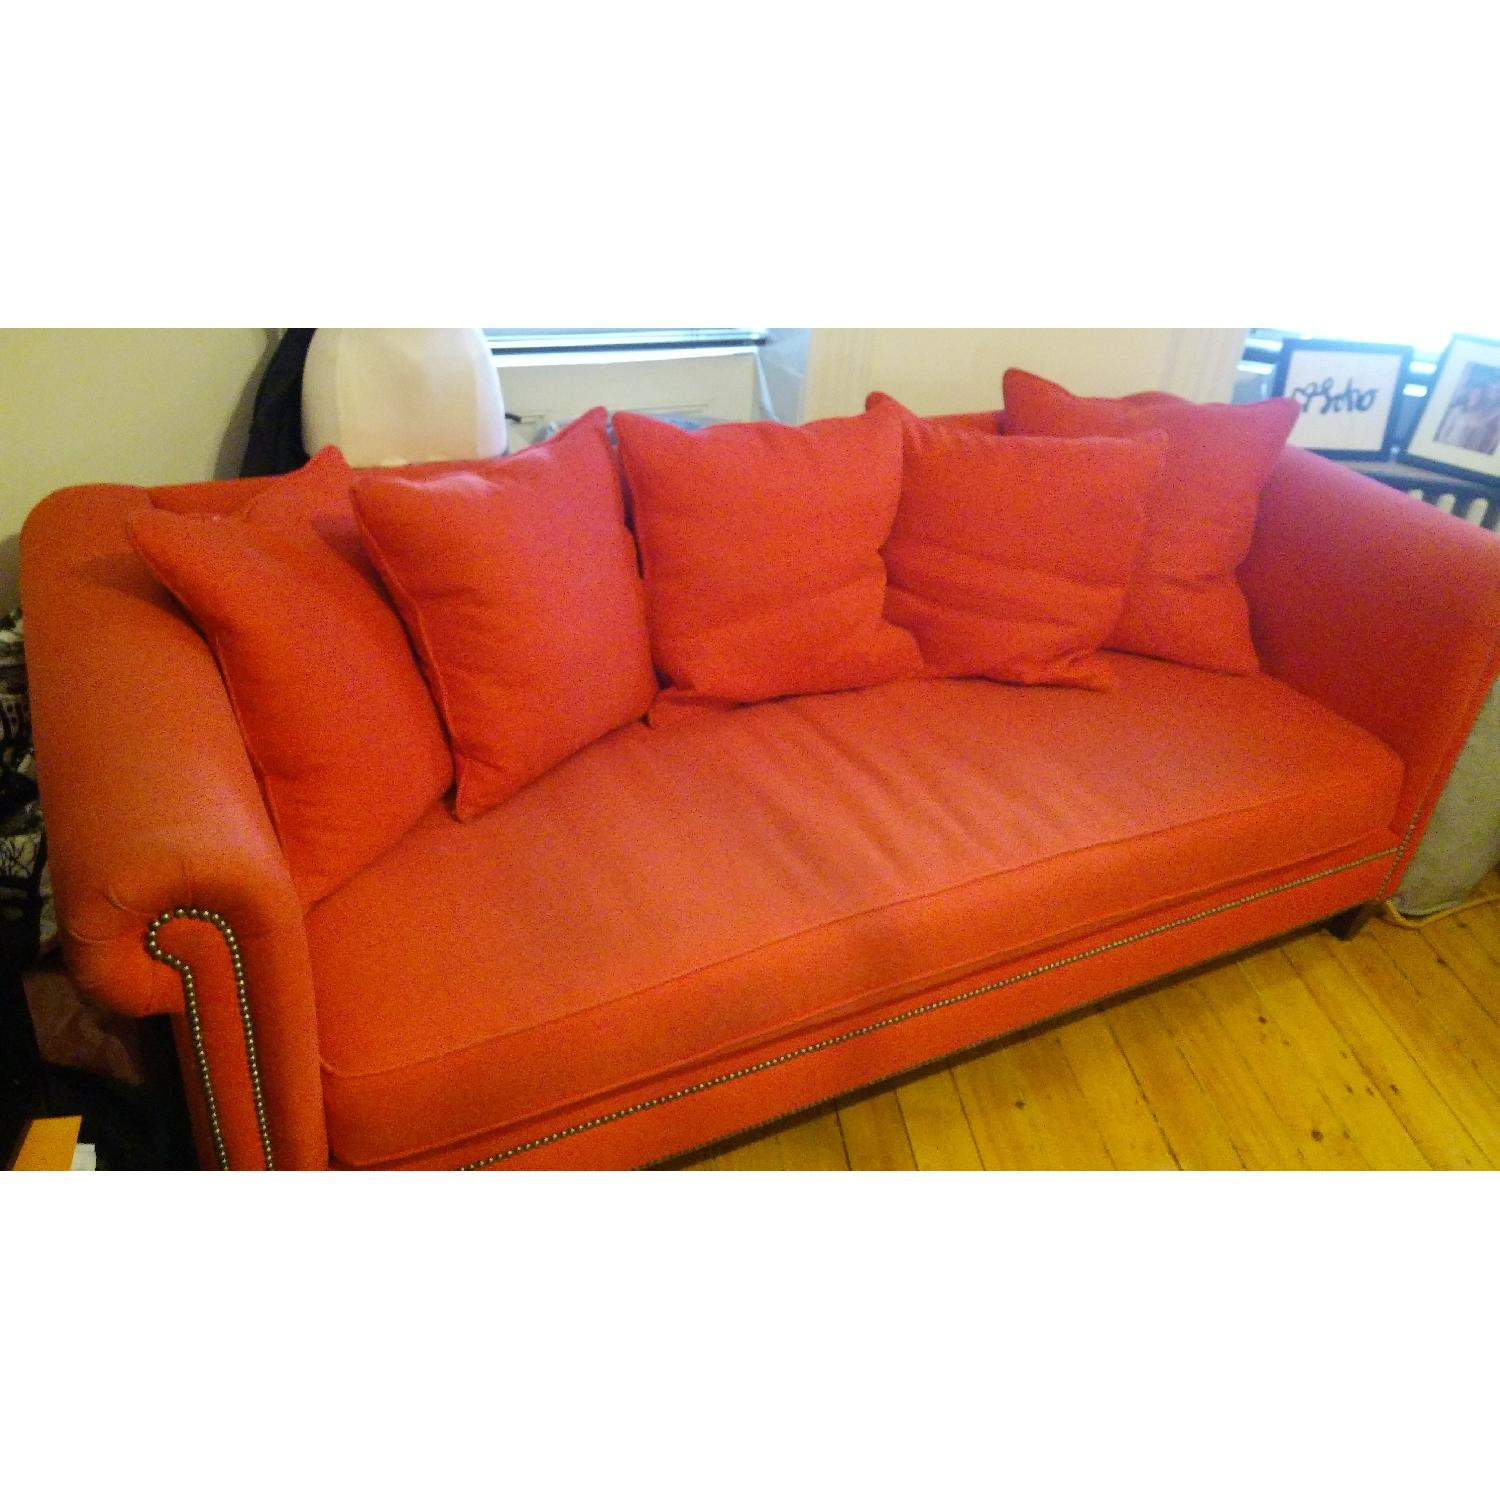 Crate & Barrel Red Couch - image-3